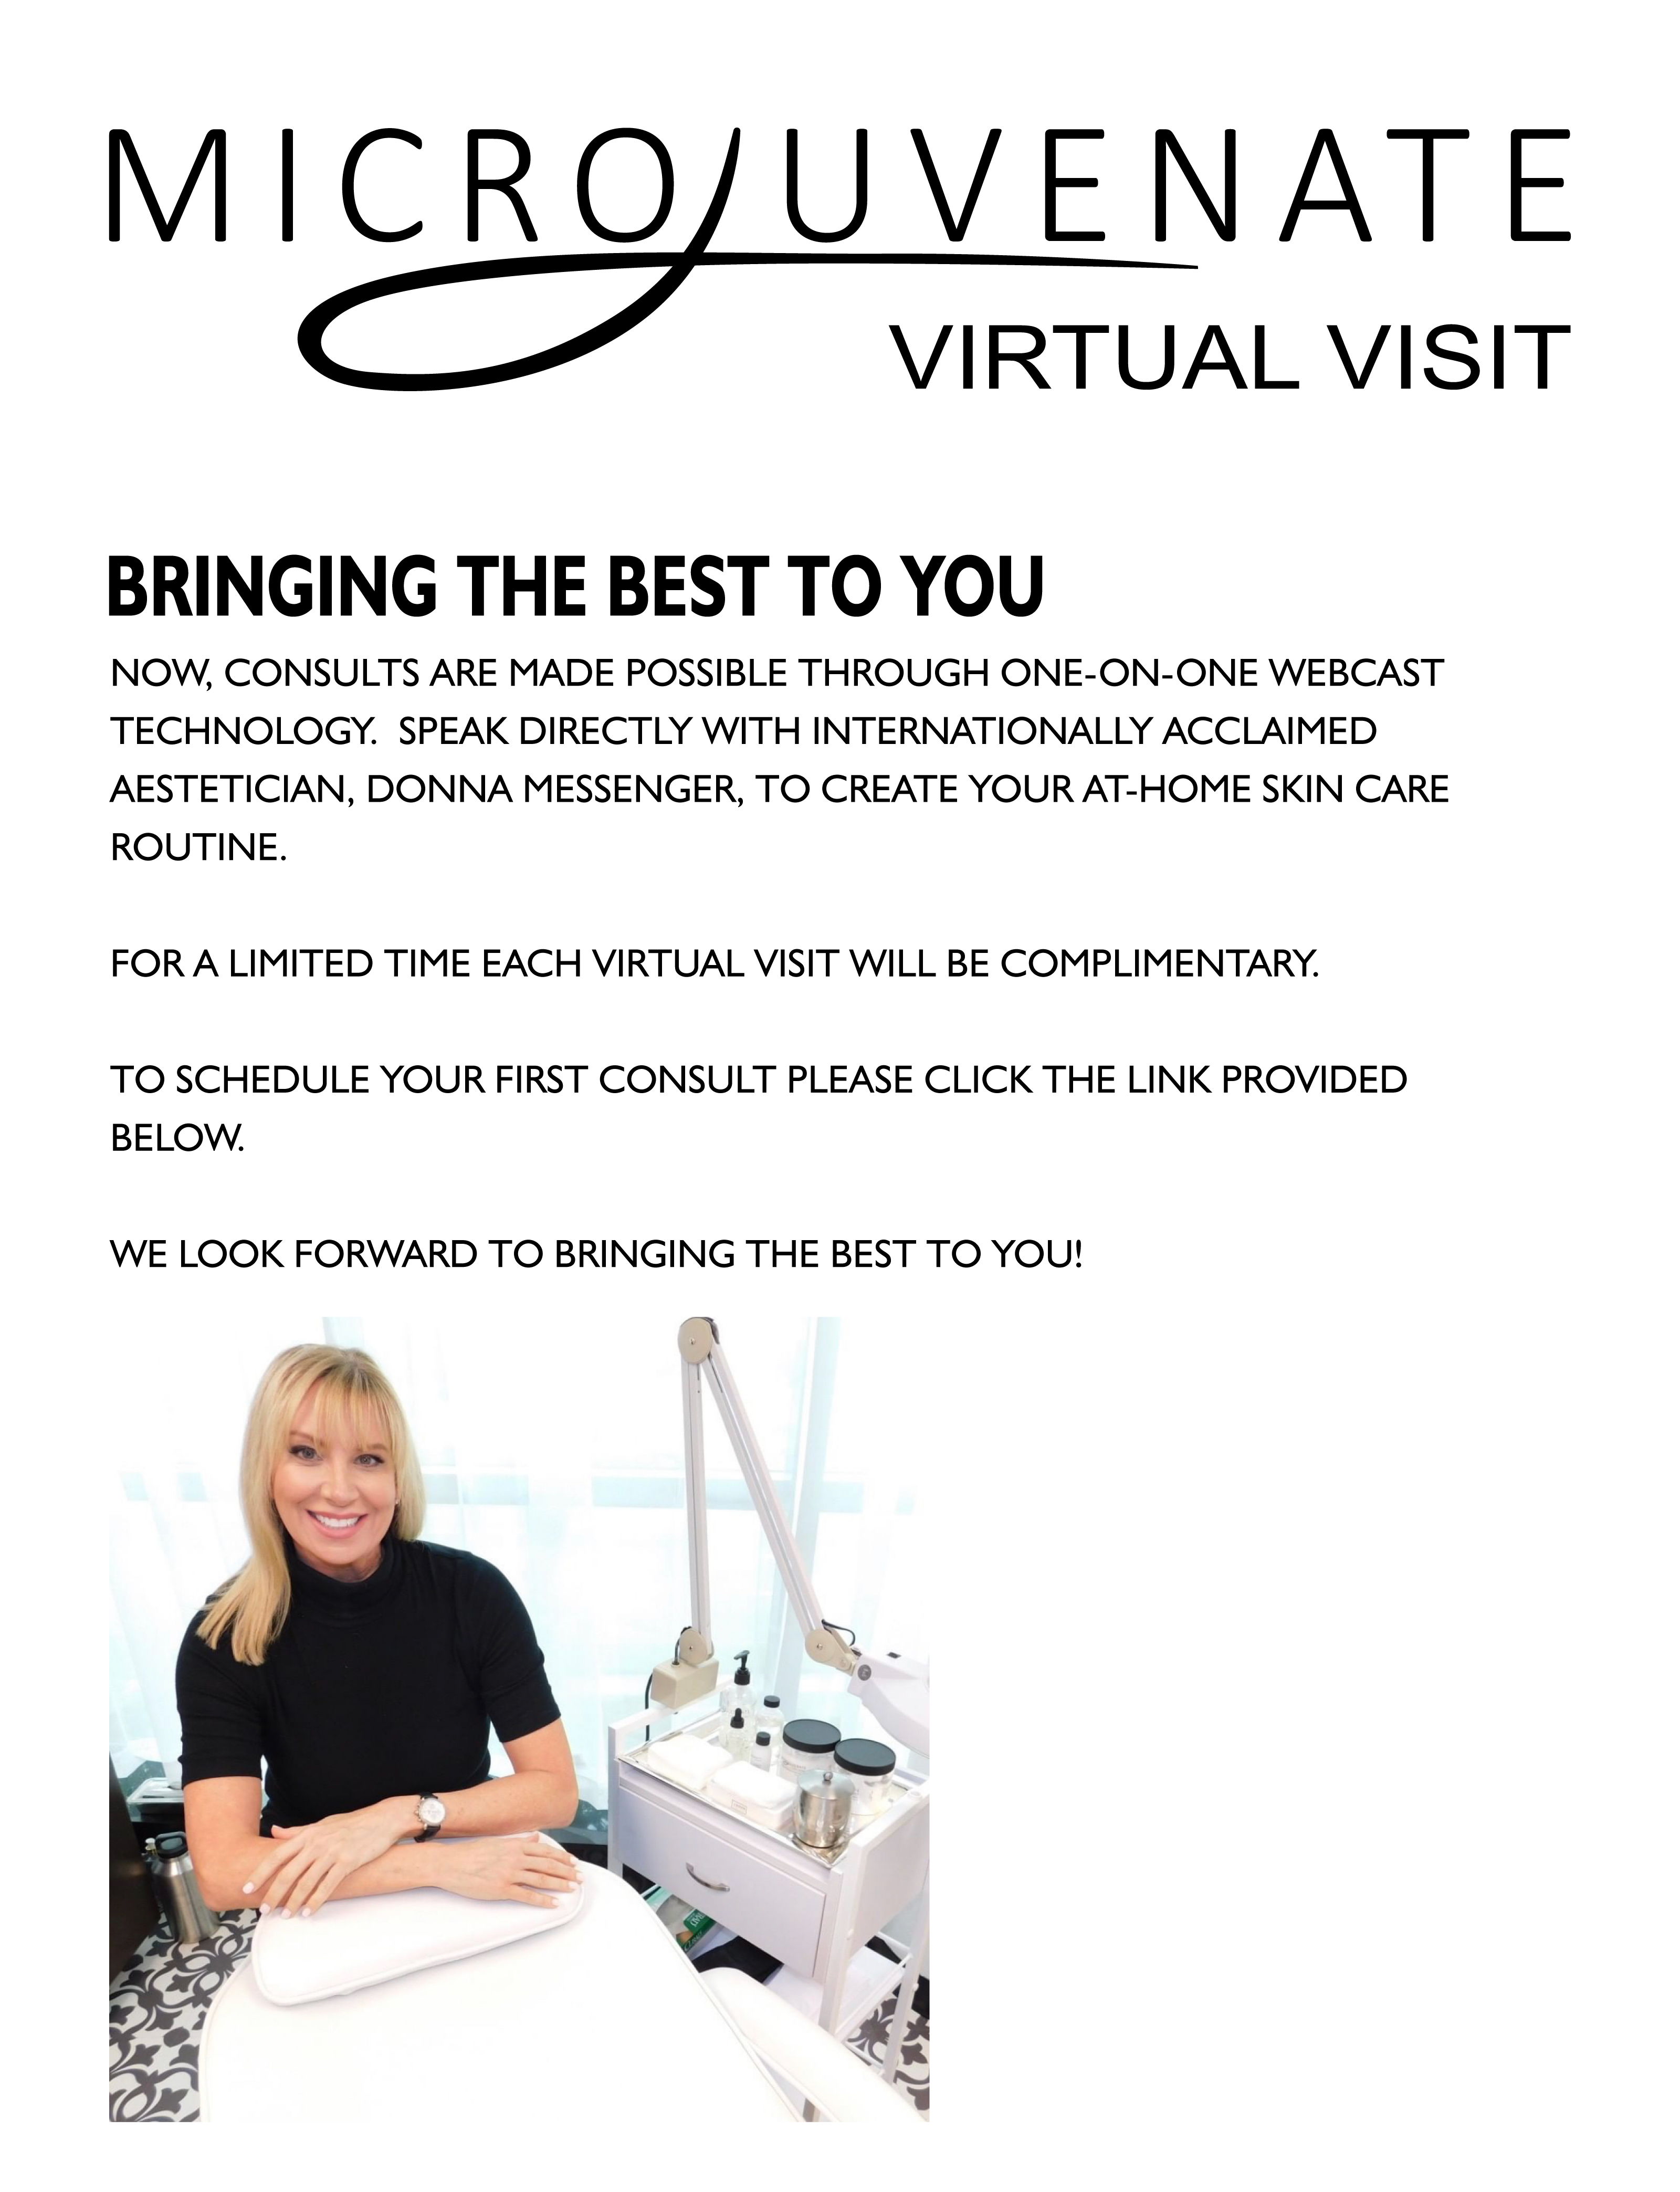 virtual-visit-with-donna-01.jpg